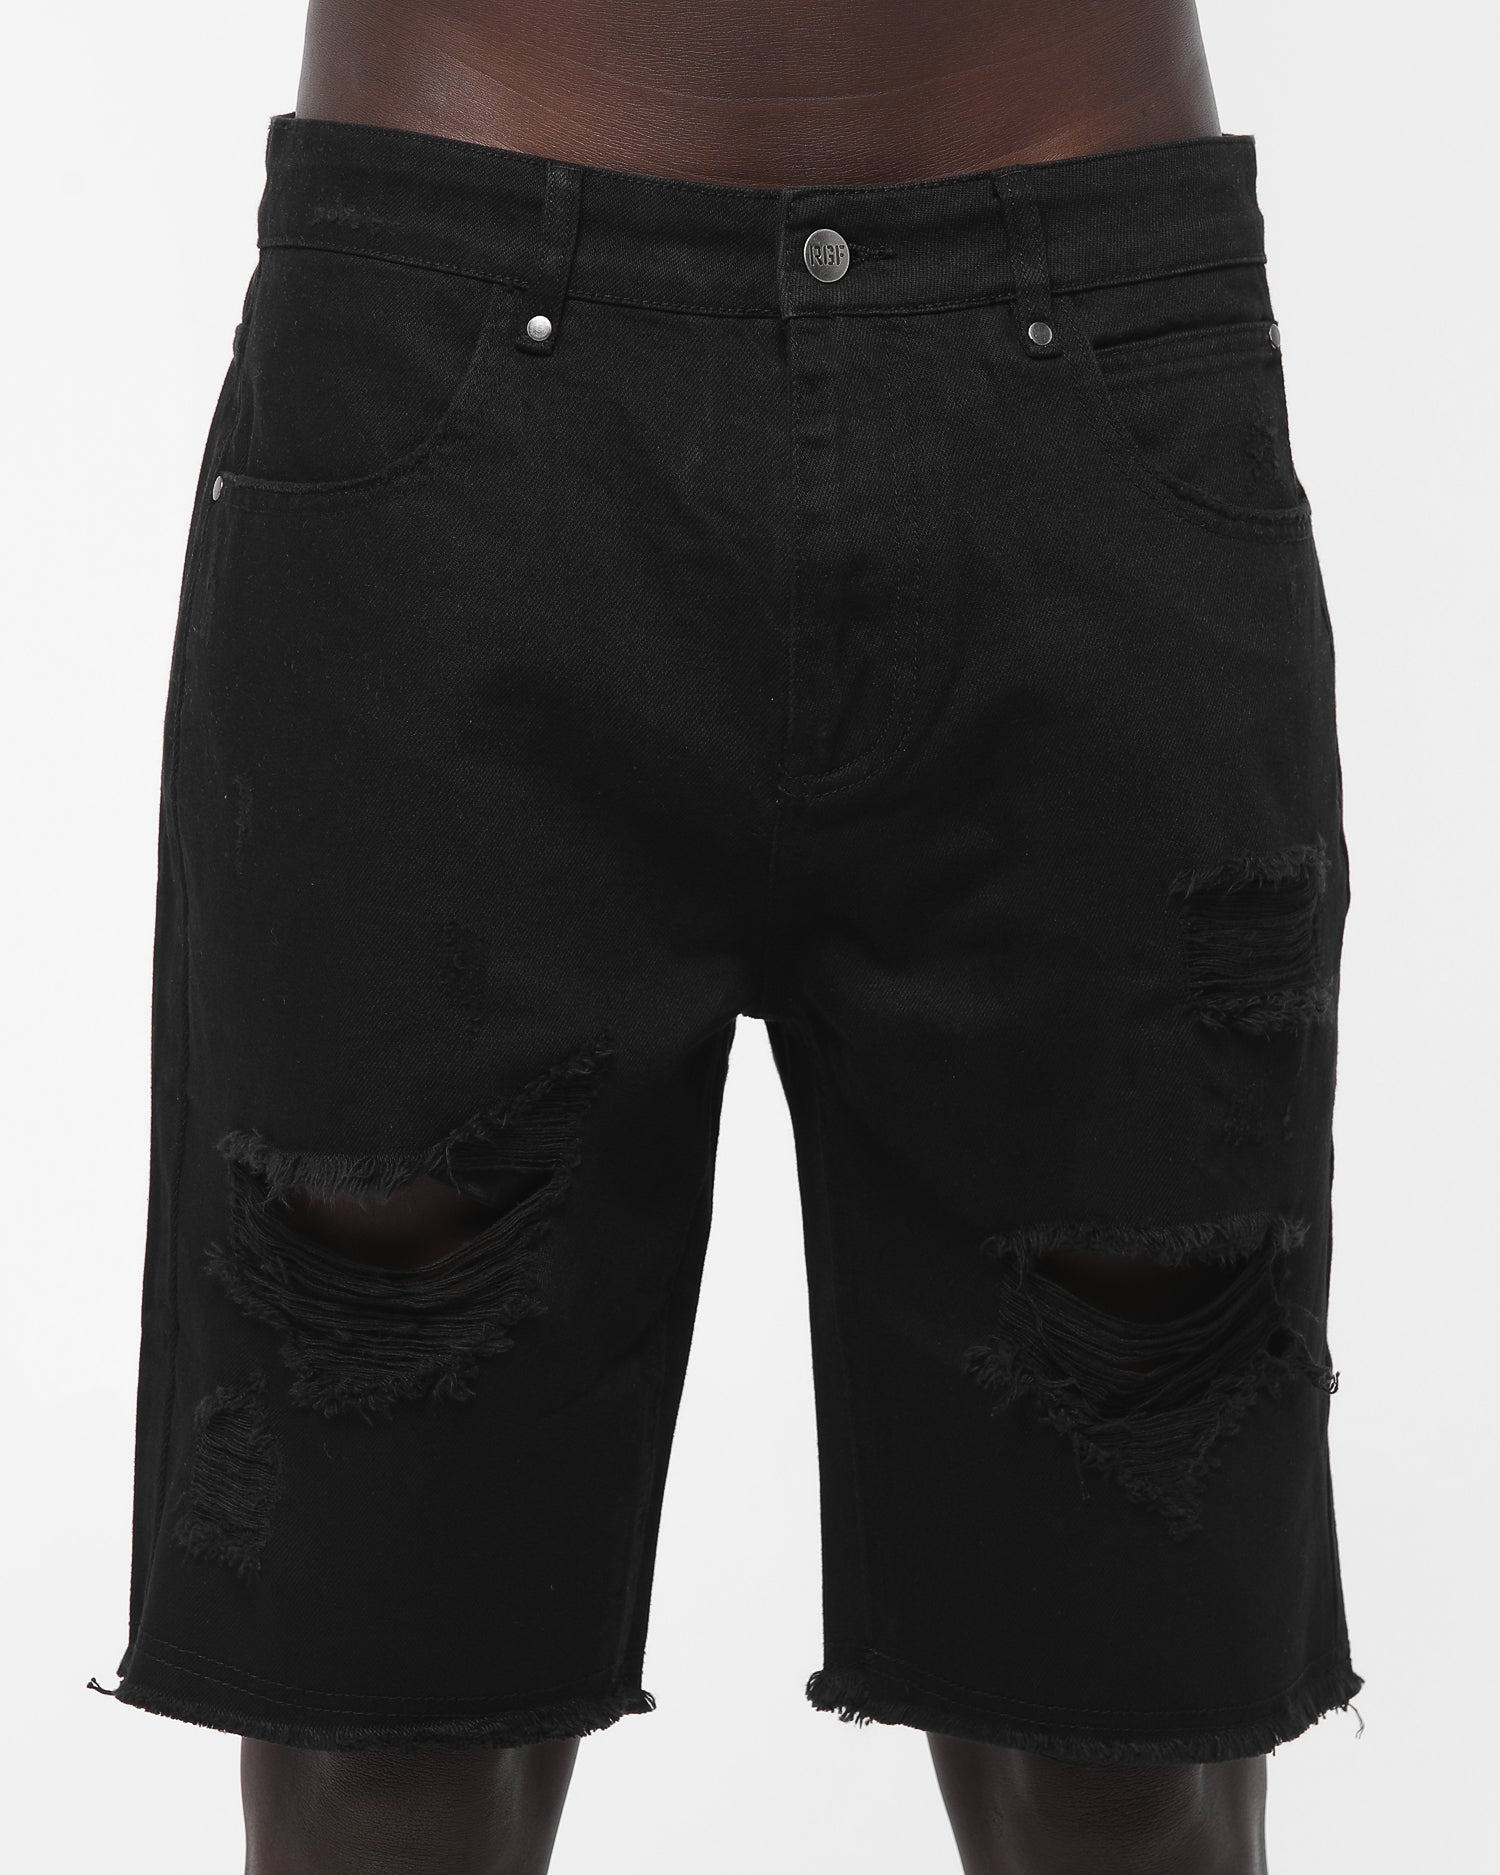 Rats Get Fat Anguish Short Vintage Black